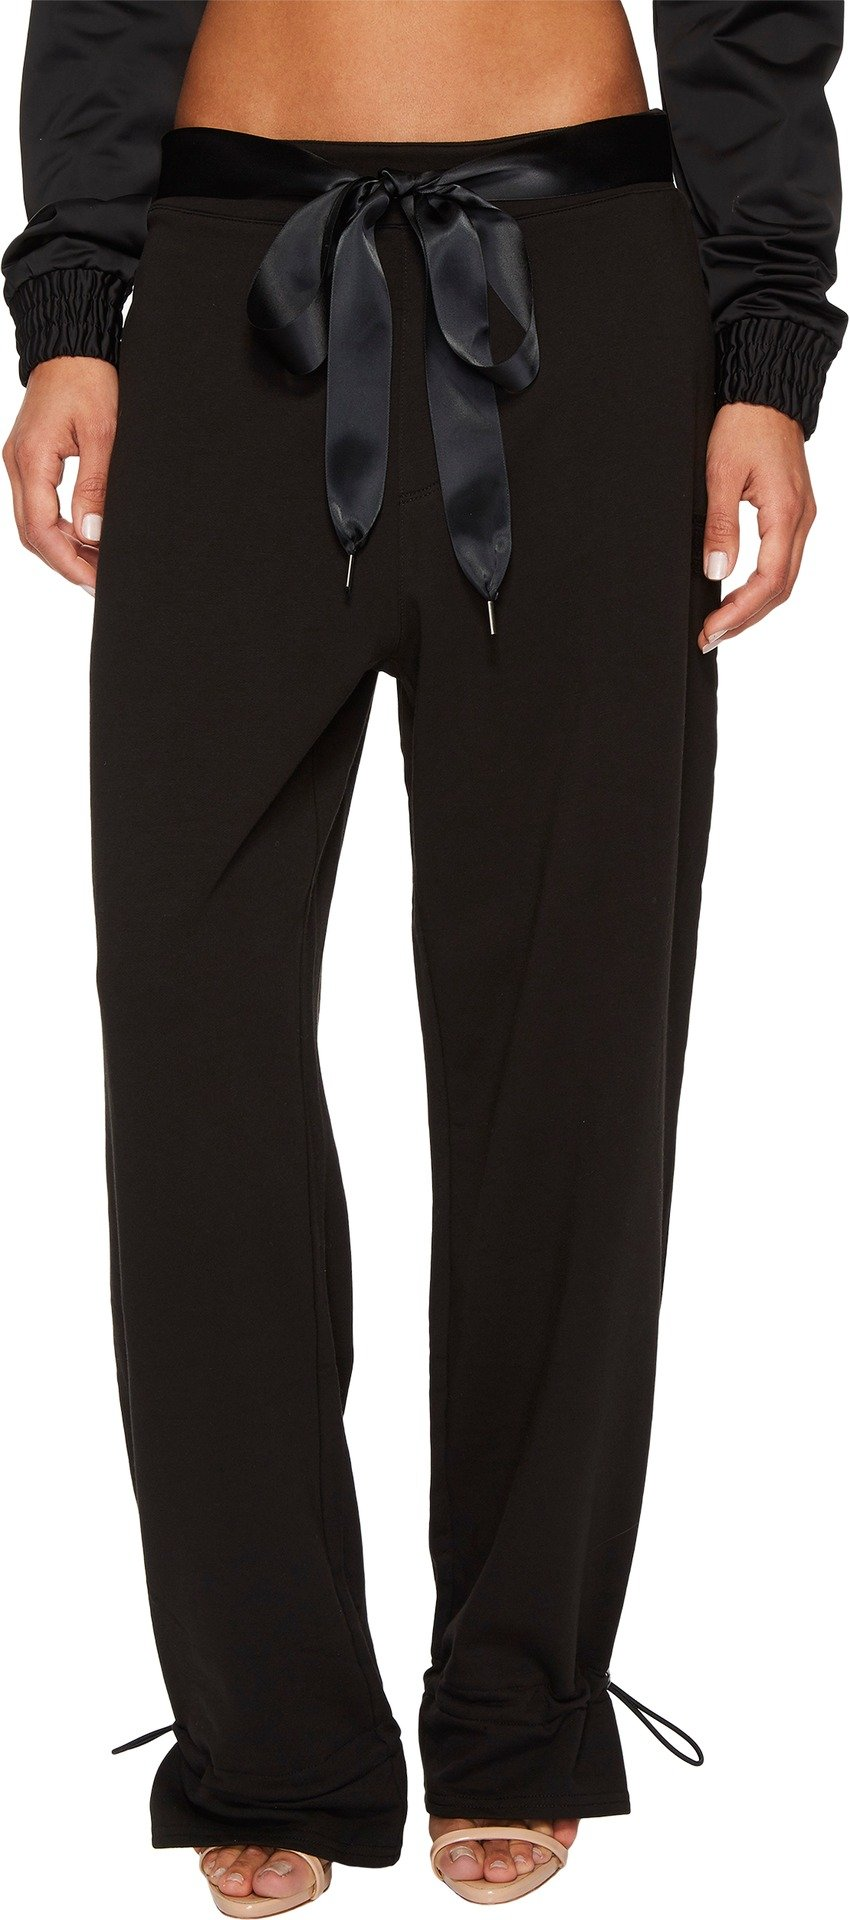 PUMA Women's Fenty Gathered Ankle Sweatpants Cotton Black Large